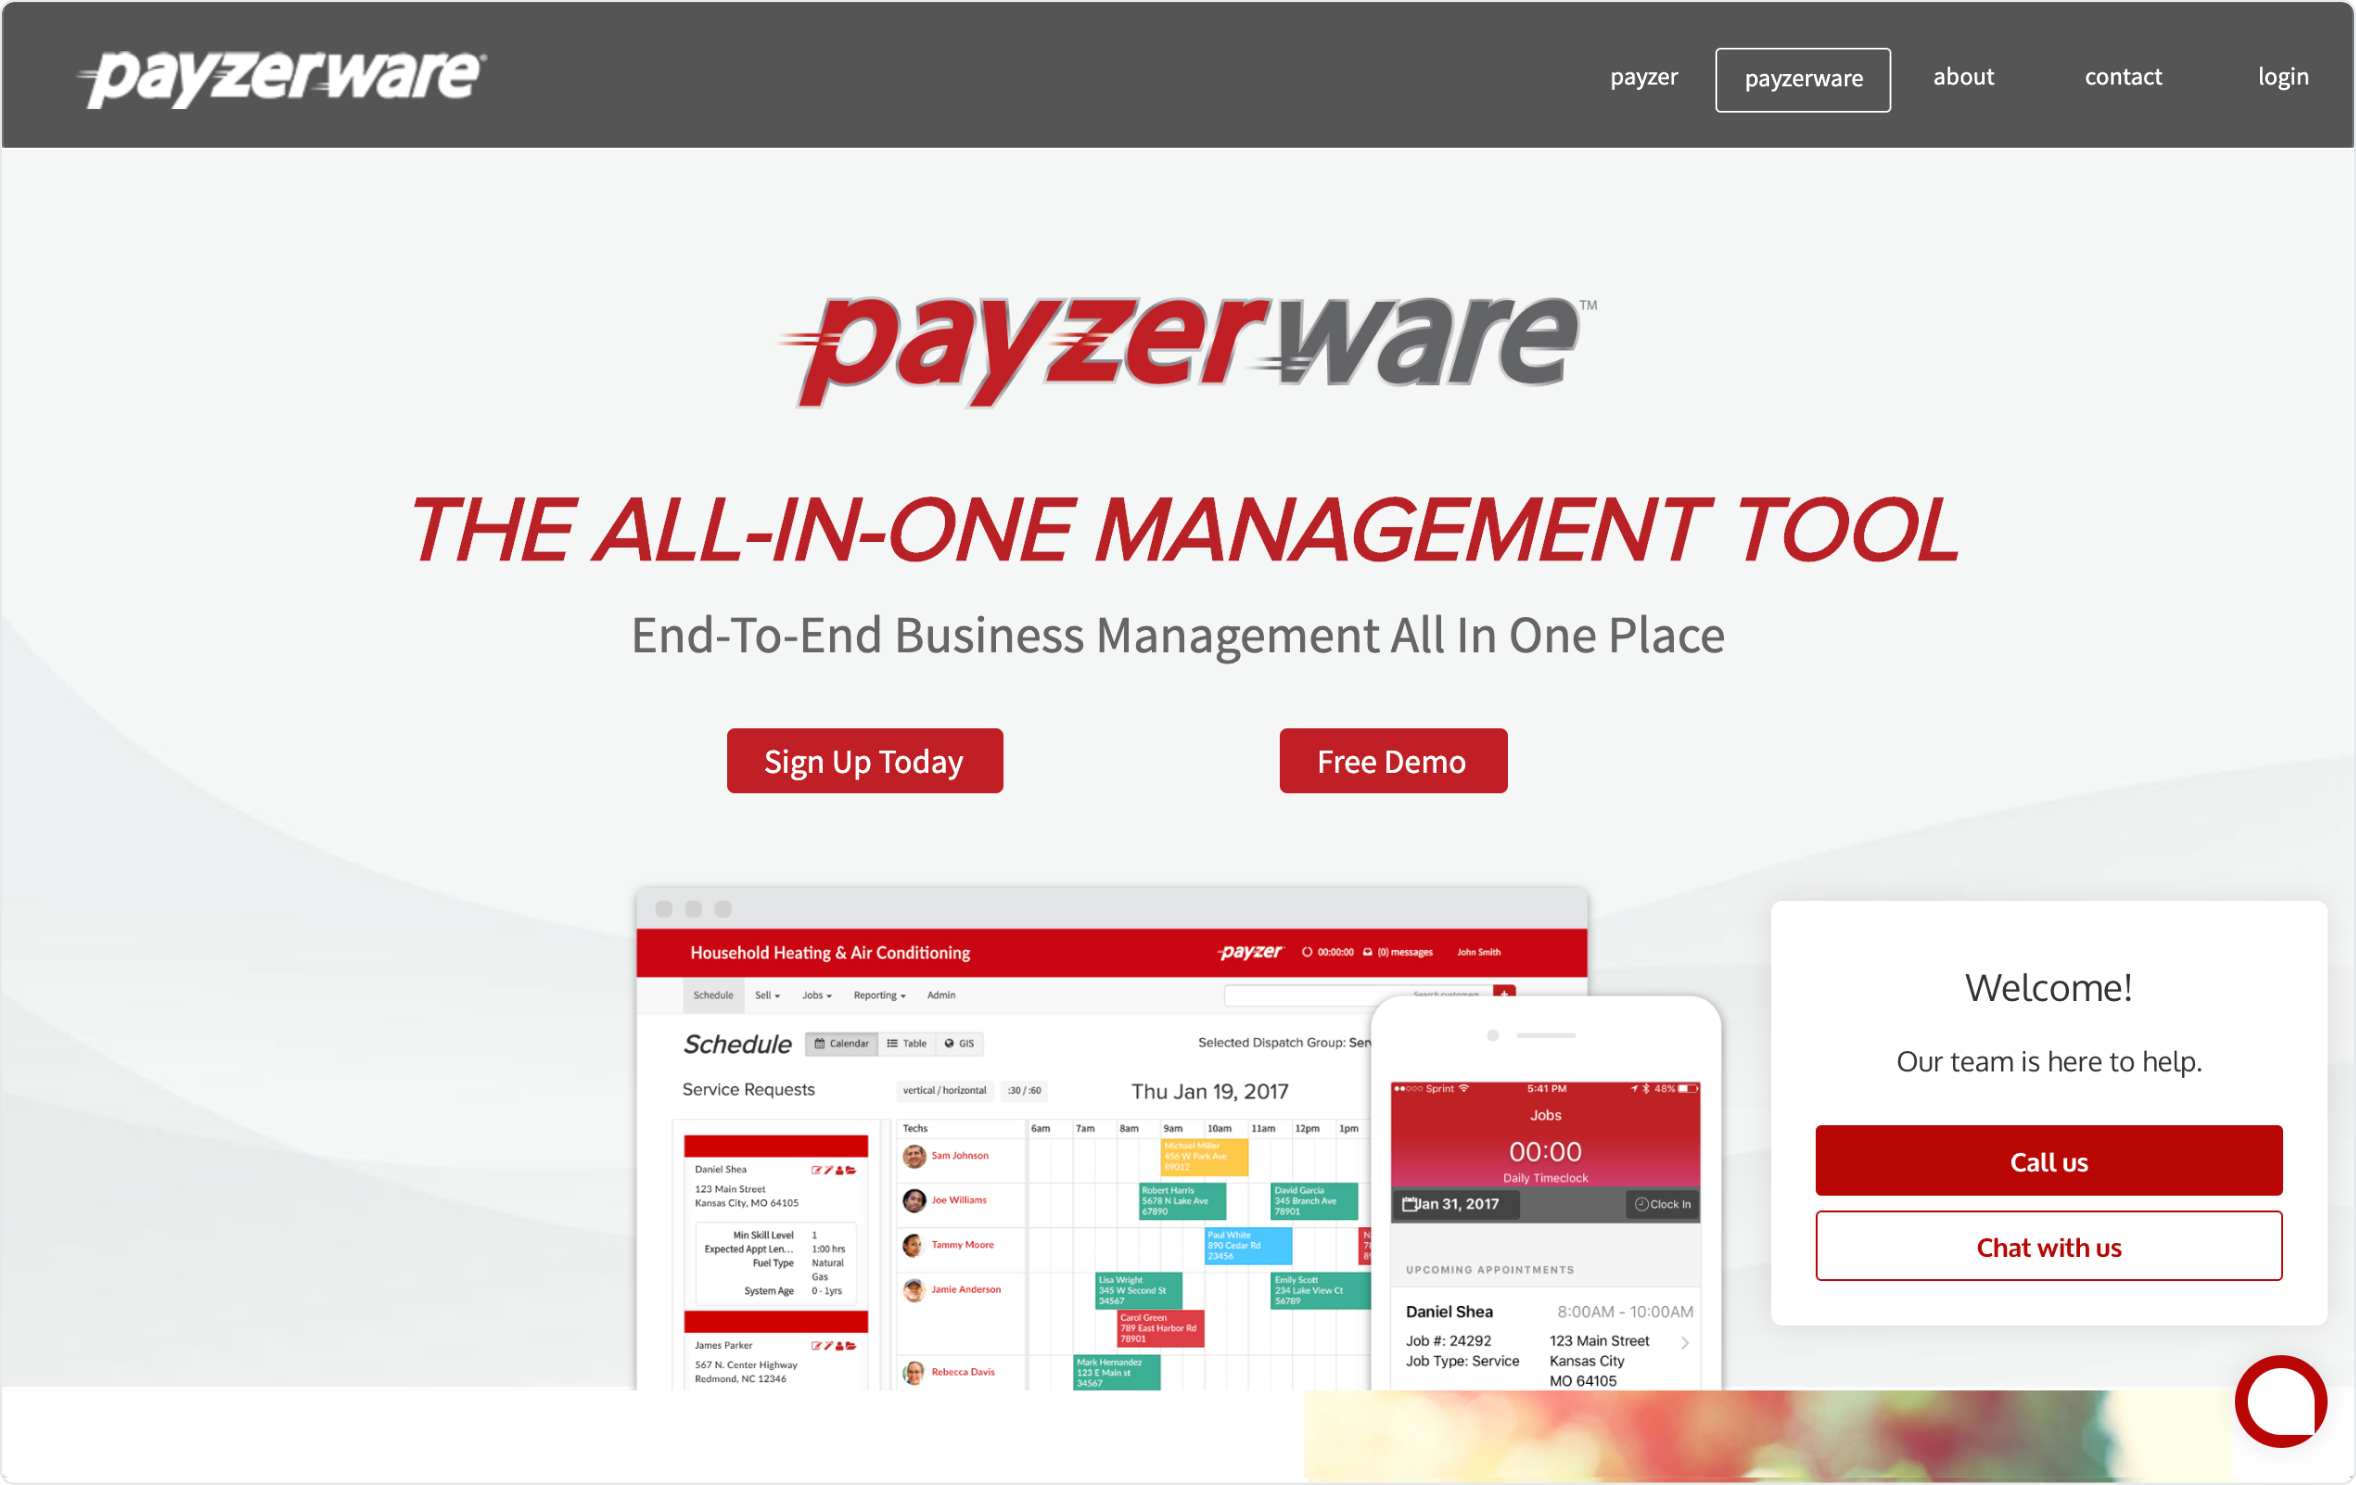 Payzer using Qualified's conversational marketing solution on their website